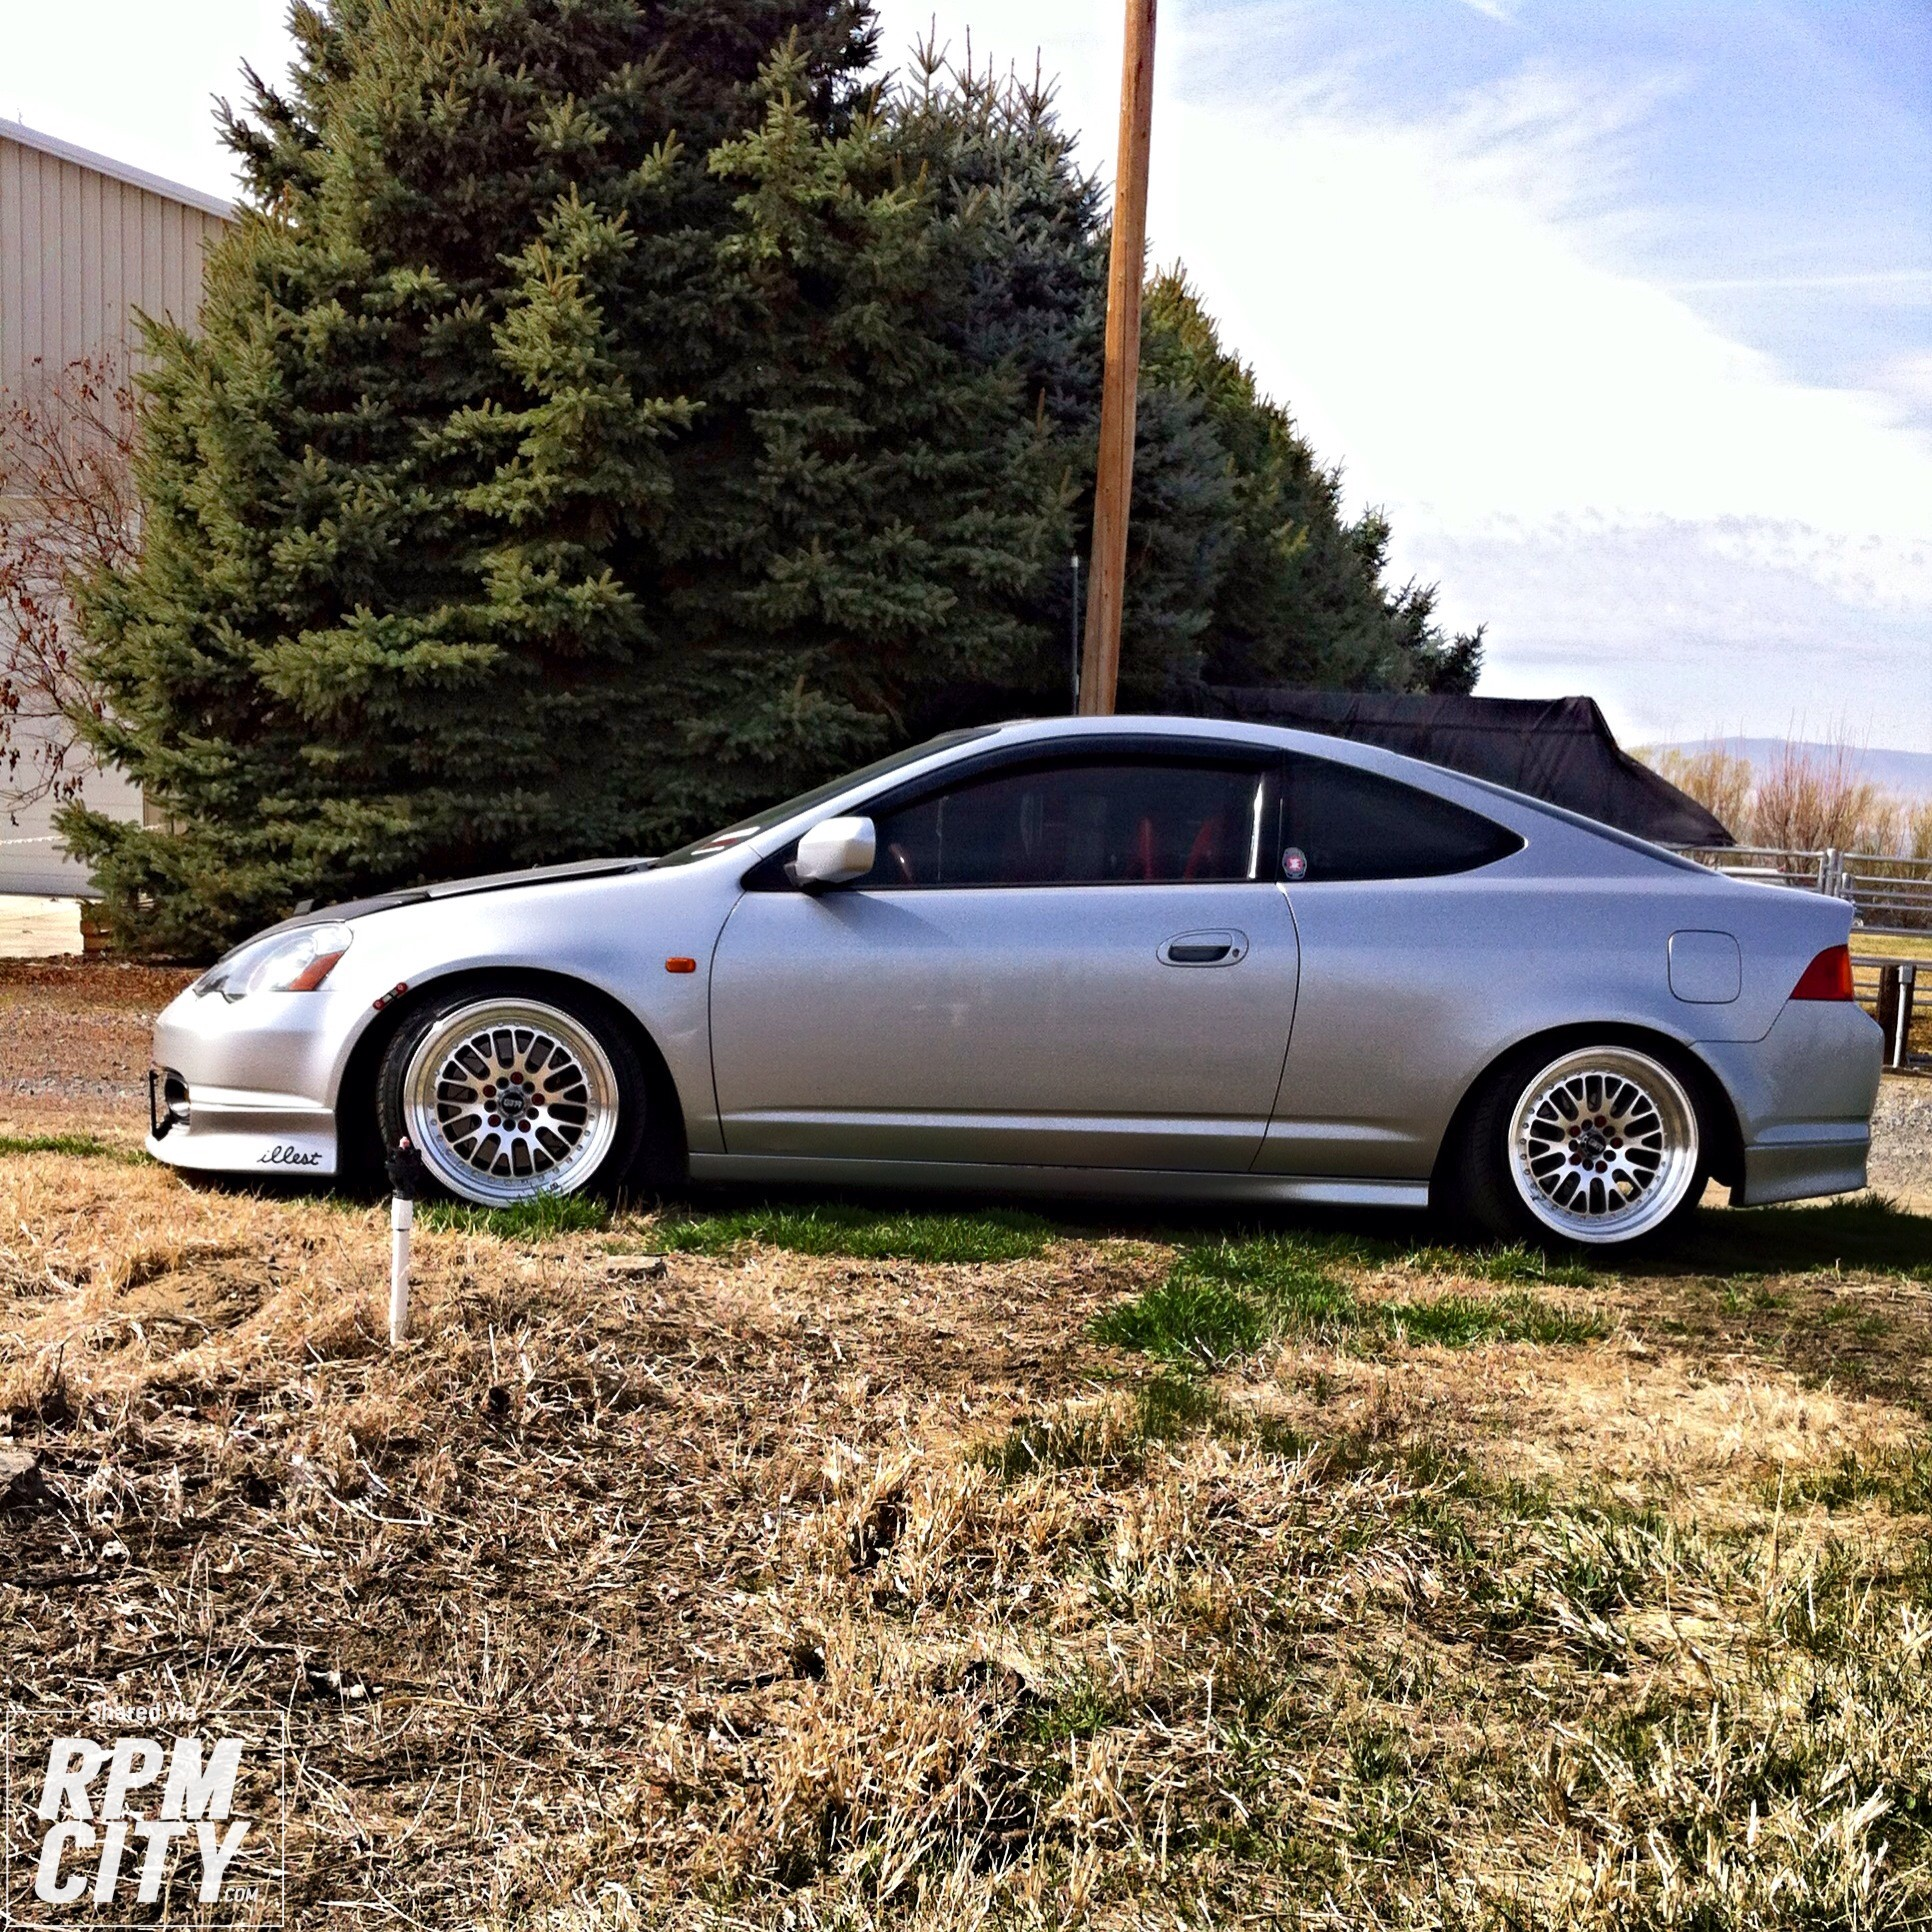 LOW AND CLEAN 2002 Acura RSX Type S